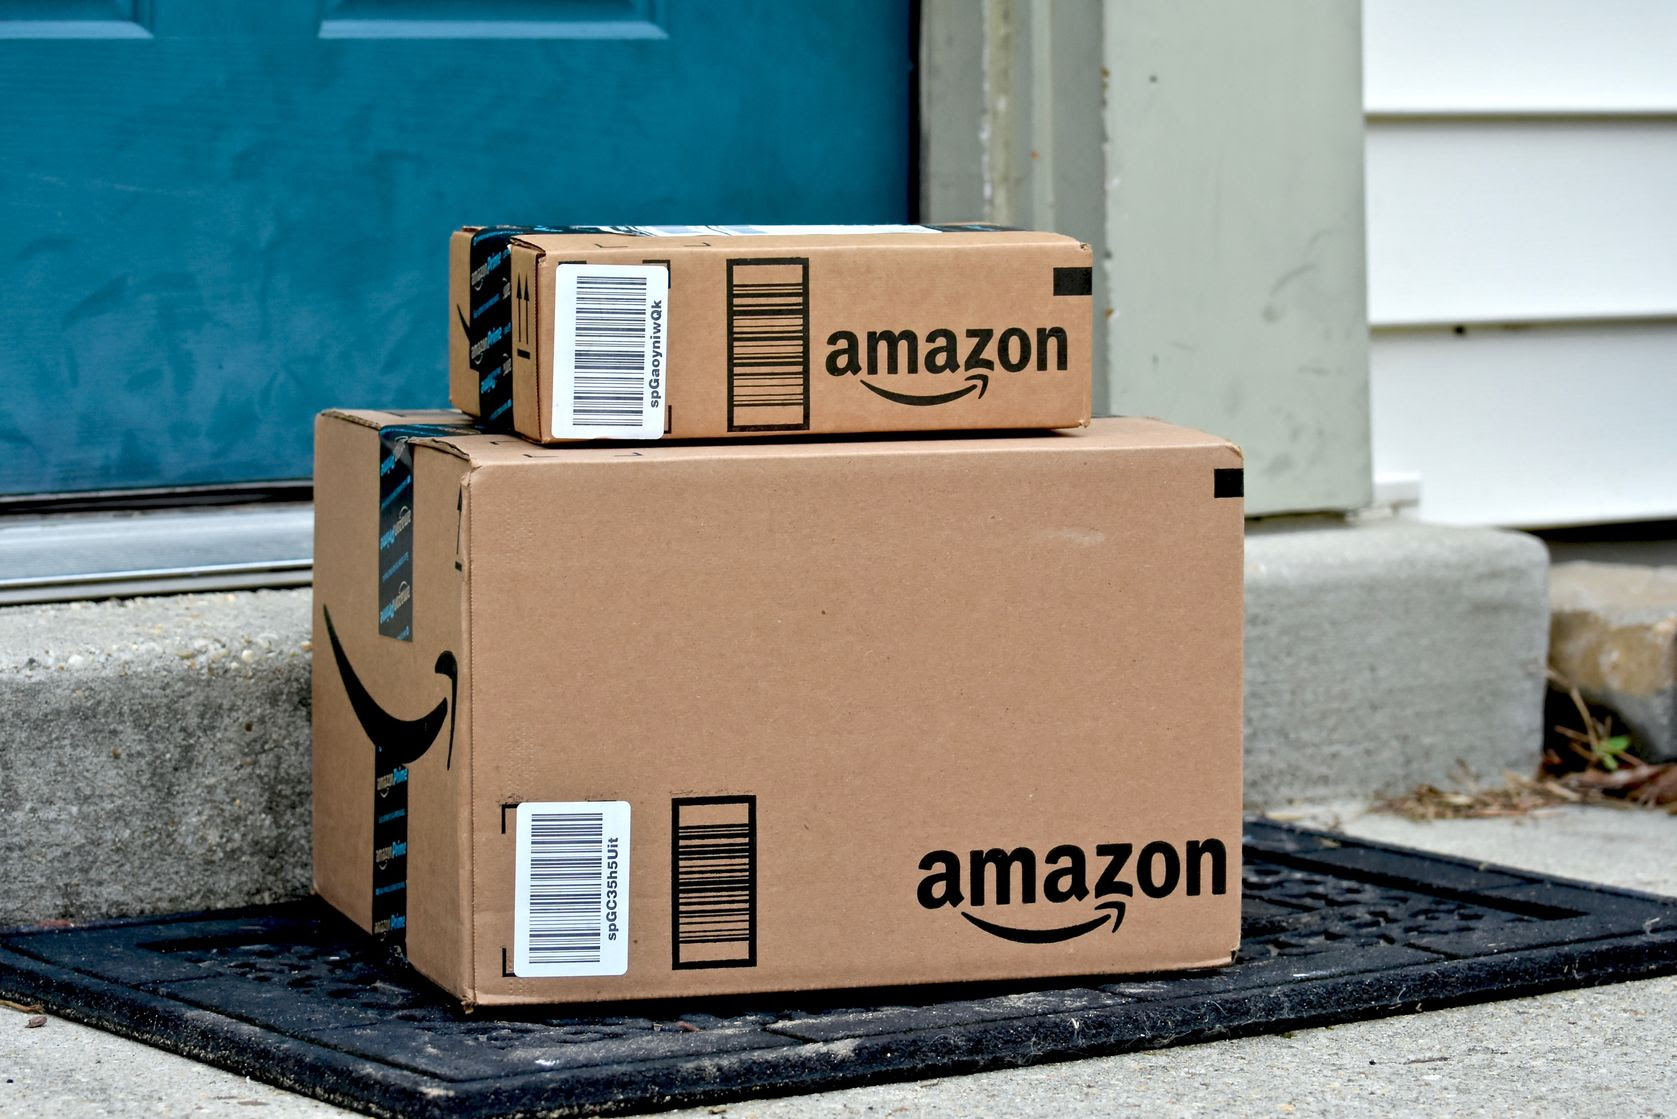 Amazon Prime membership estimated to have doubled in the